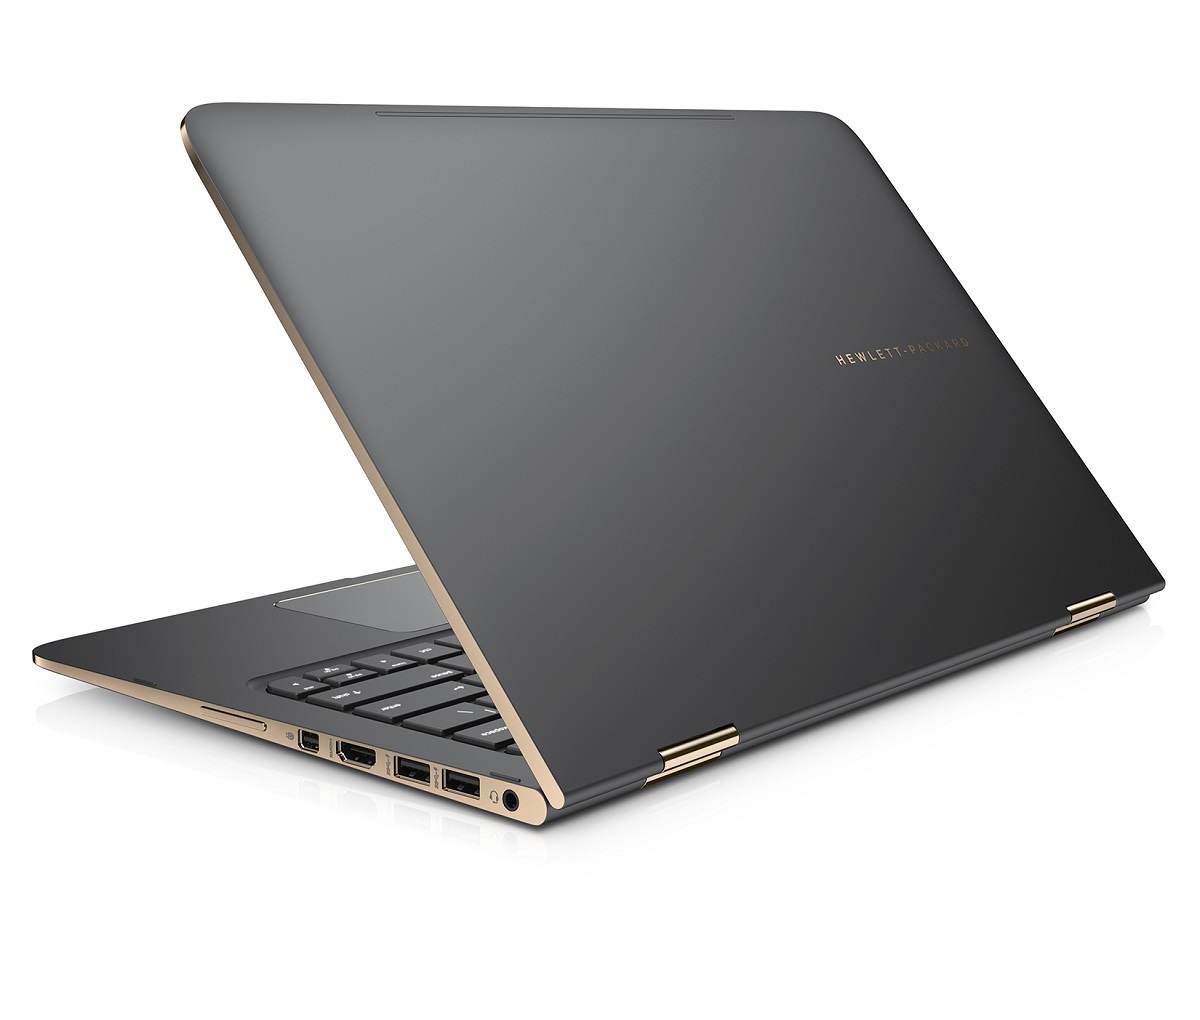 HP Spectre 13 x360 Limited Edition